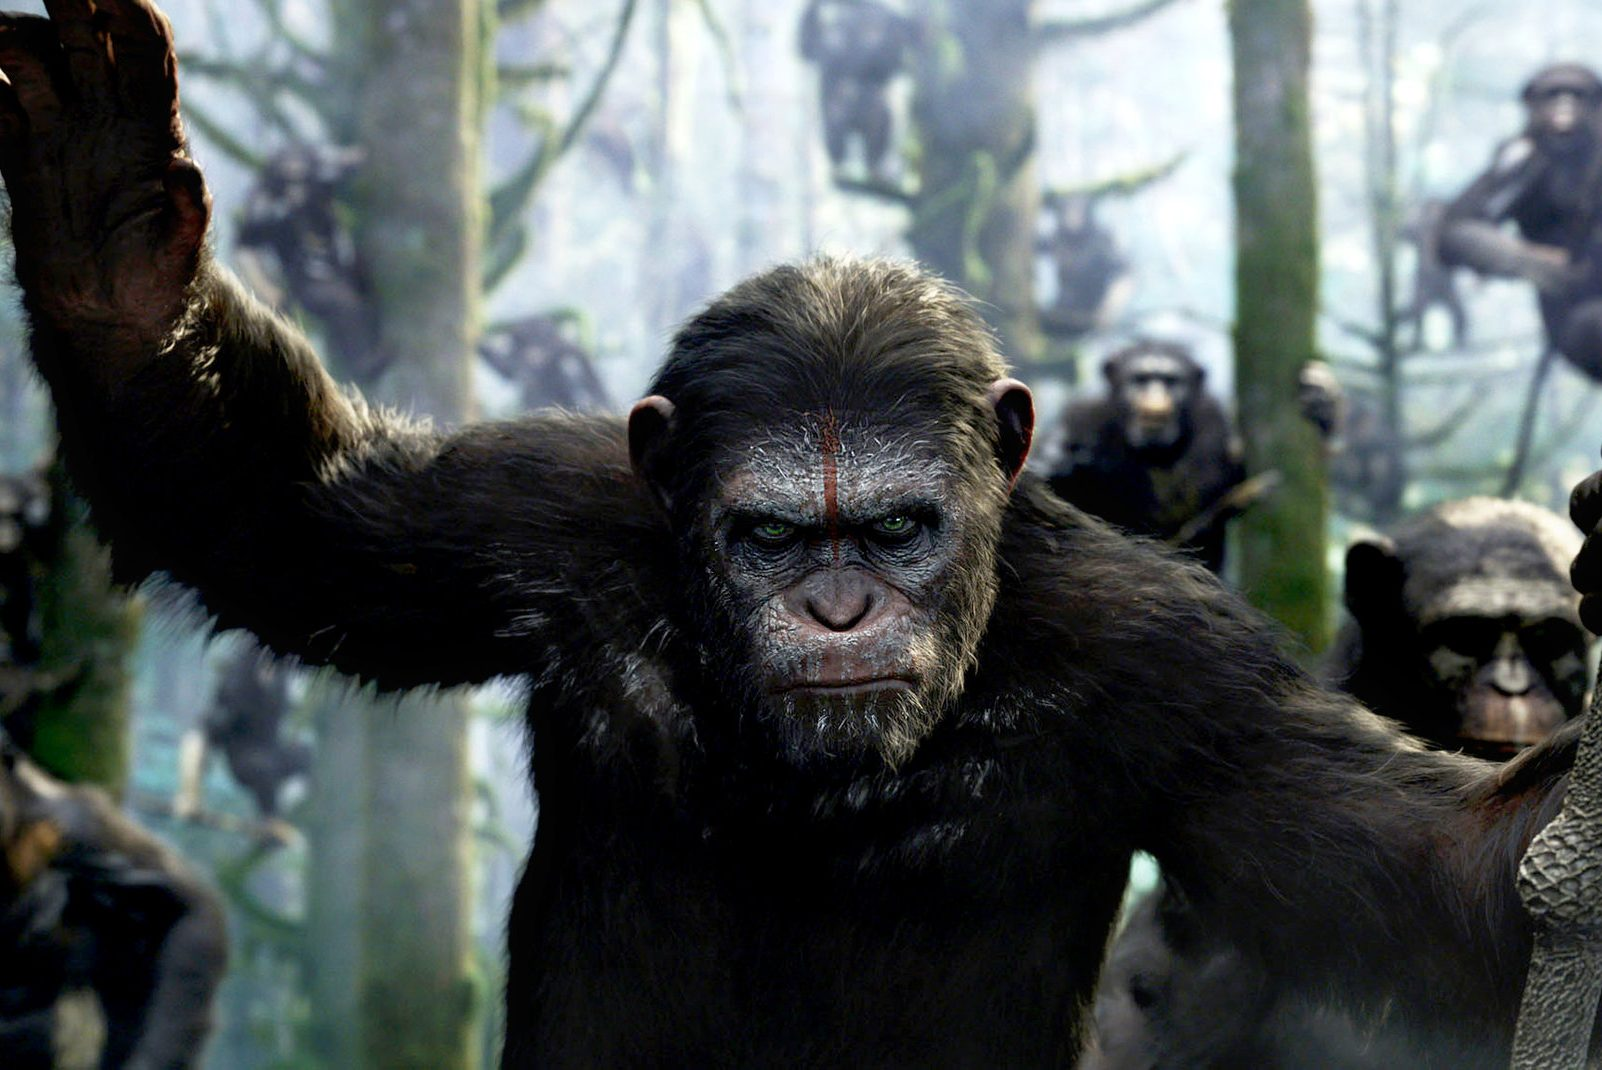 A still from the most recent addition to the Planet of the Apes trilogy.